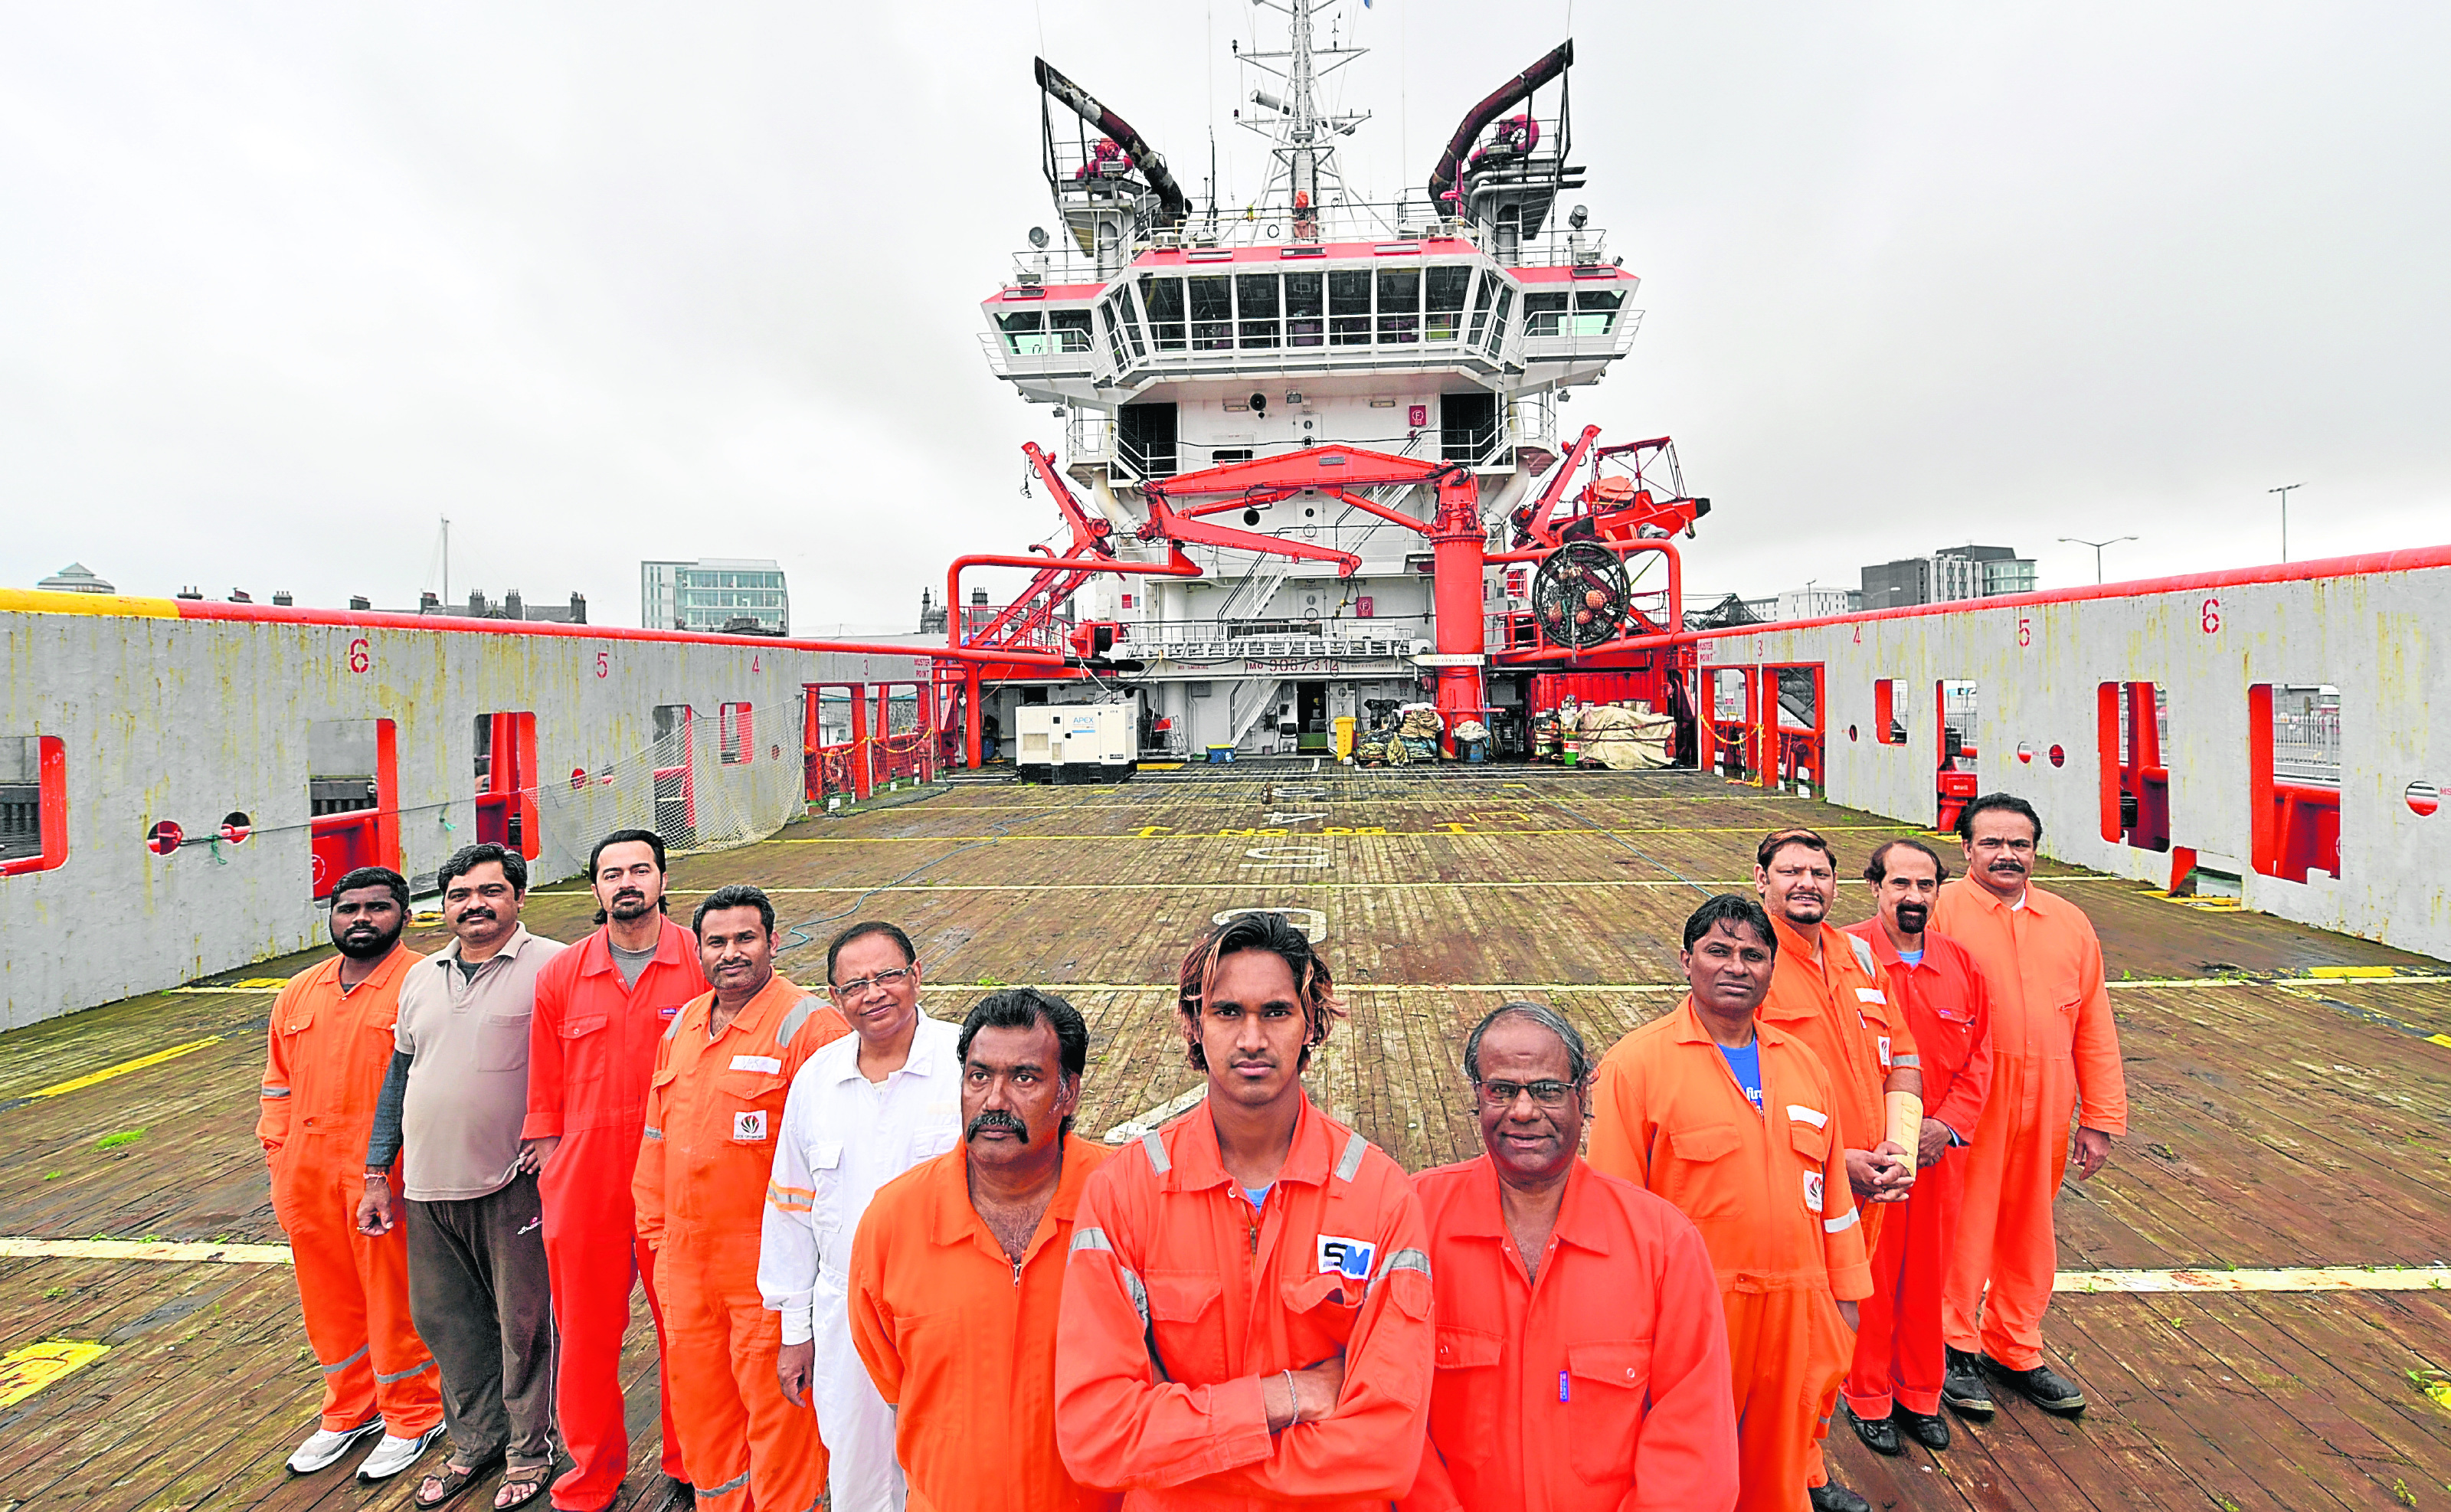 The crew of the Indian owned Malaviya Seven offshore vessel.